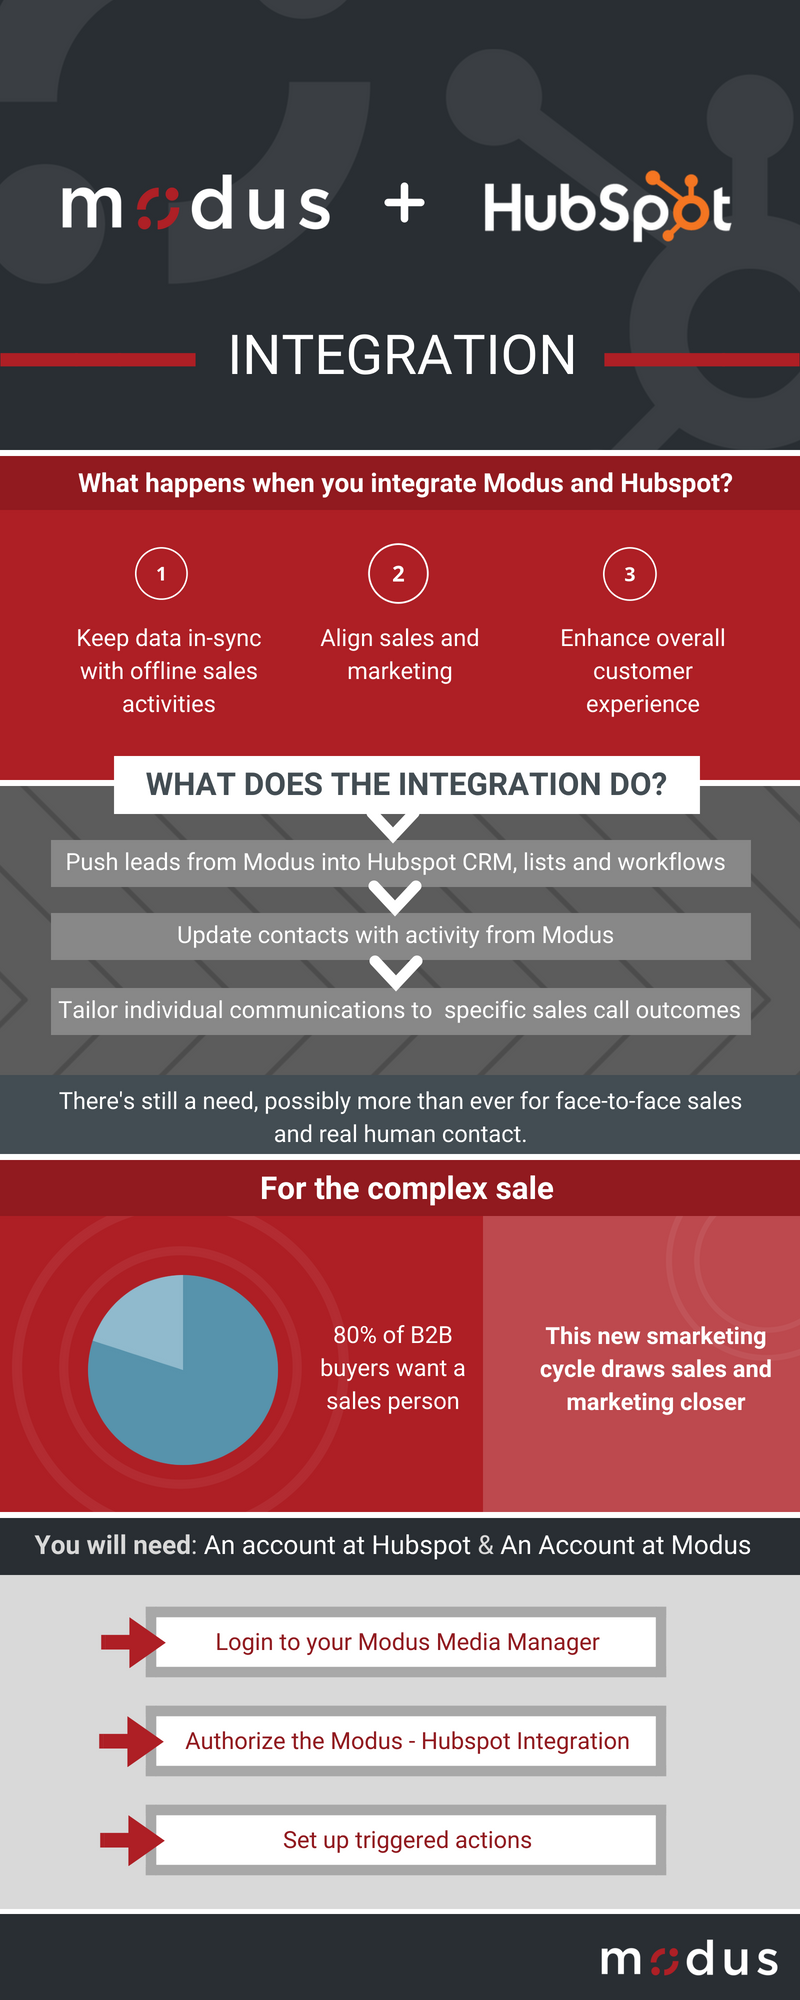 modus-hubspot-integration-inforgraphic